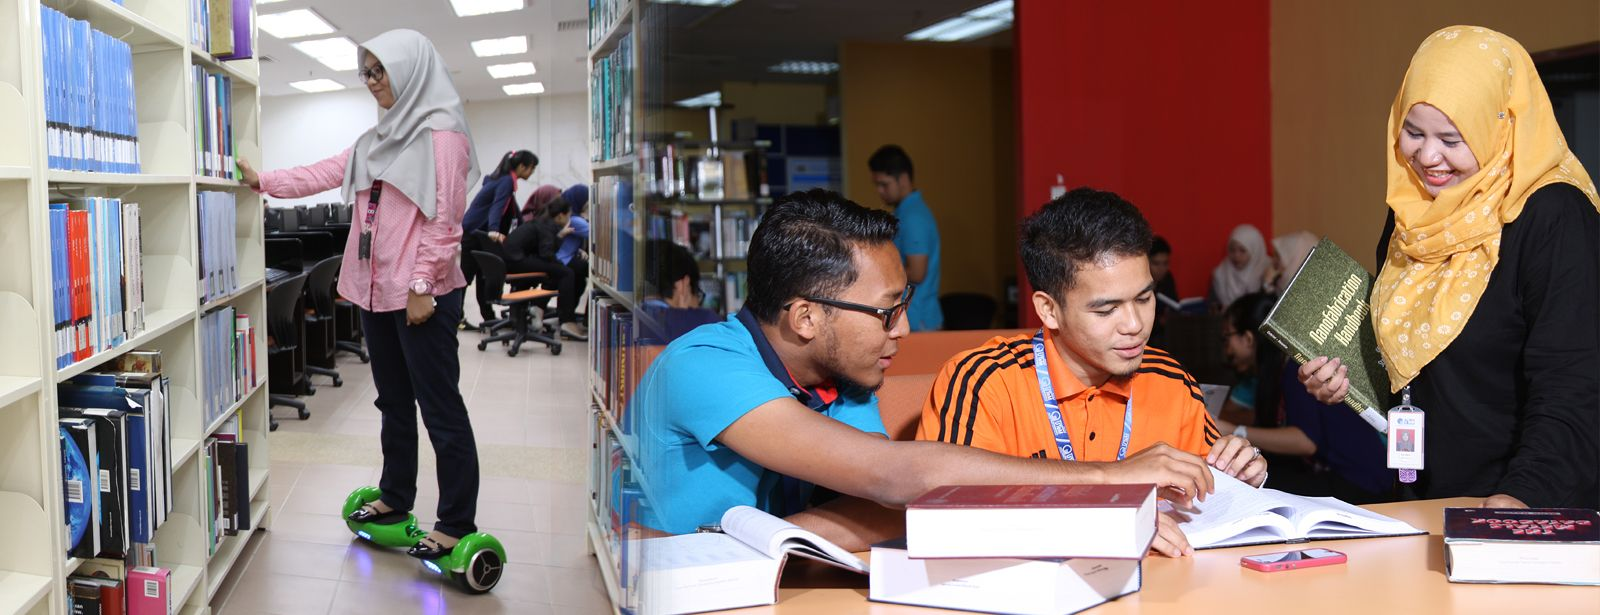 Active & Innovative Learning Environment